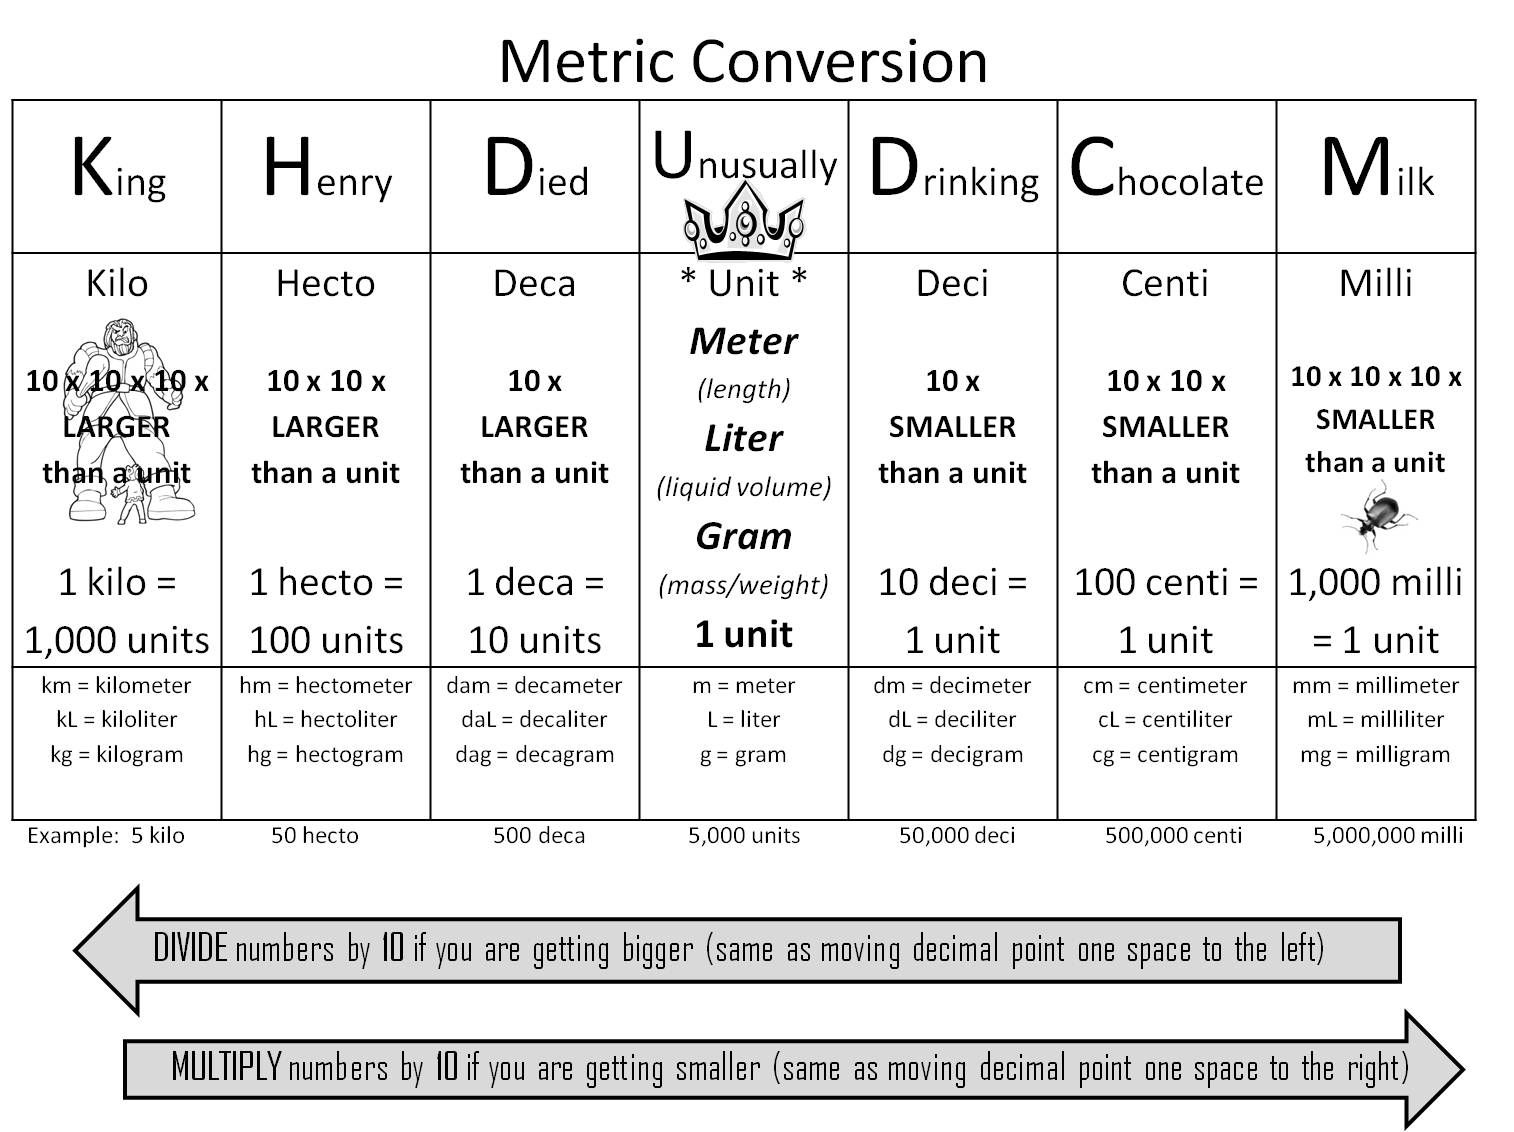 strong armor math metric conversion trick periodic table diagram periodic table chart [ 1514 x 1132 Pixel ]